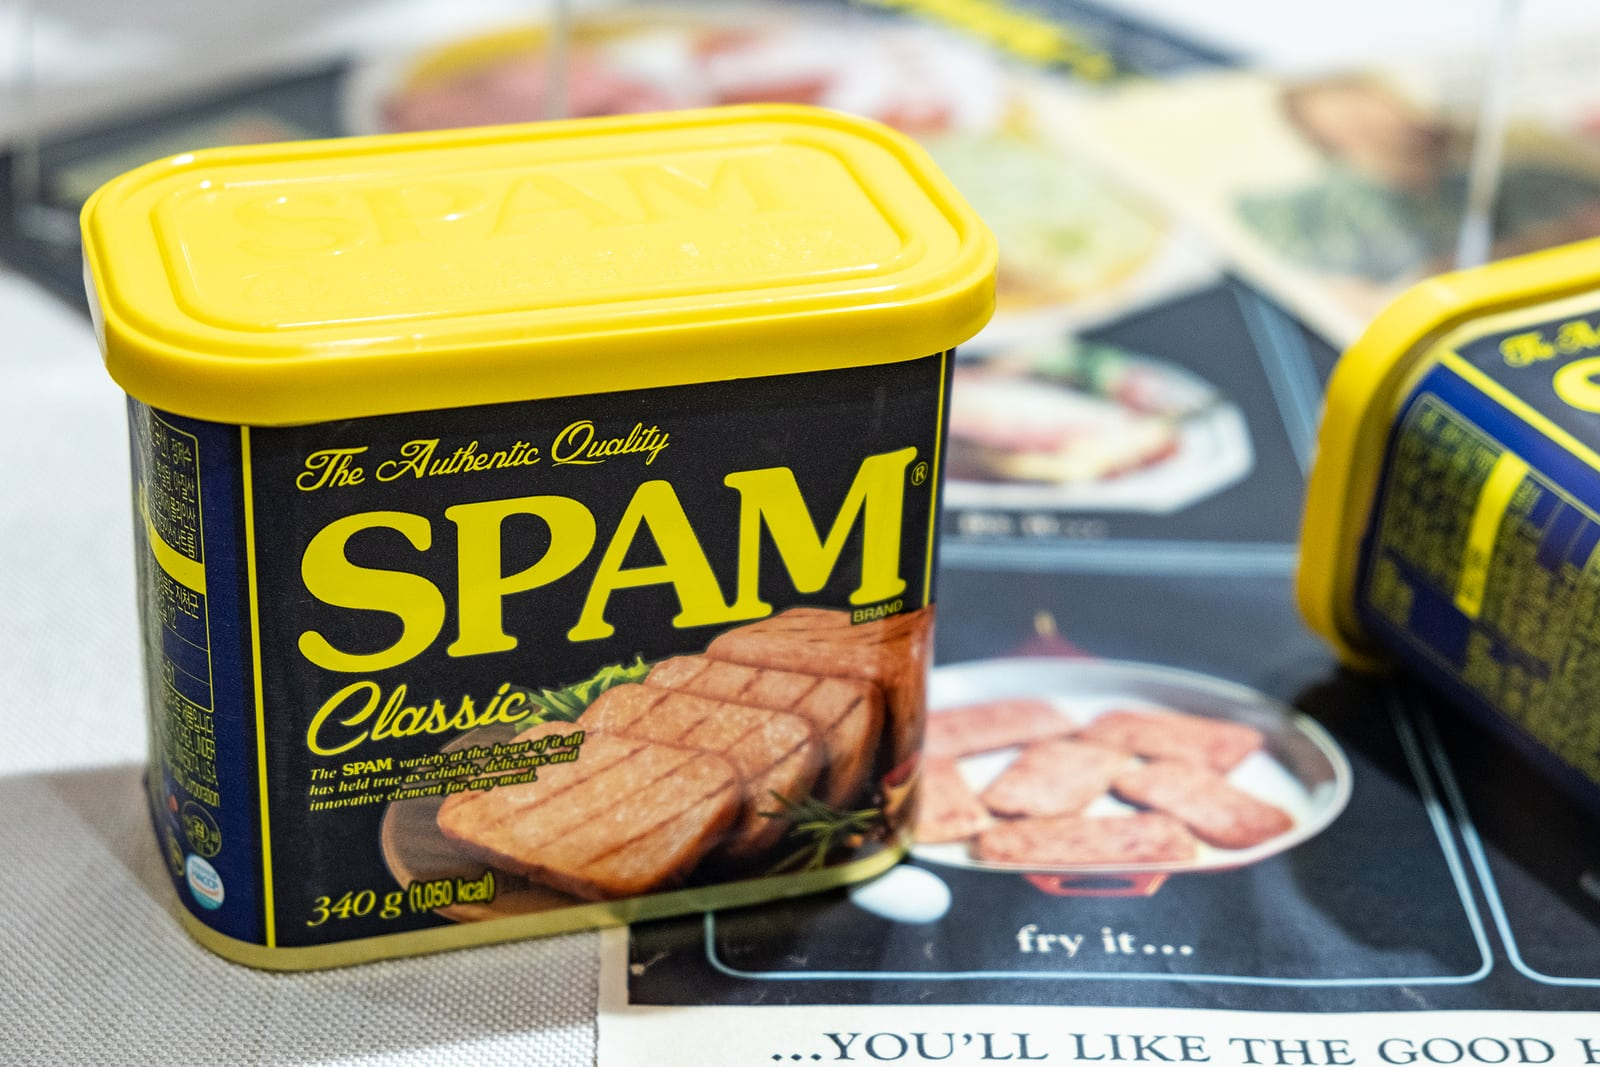 How To Keep Emails Out of Spam - Strunk Media Group